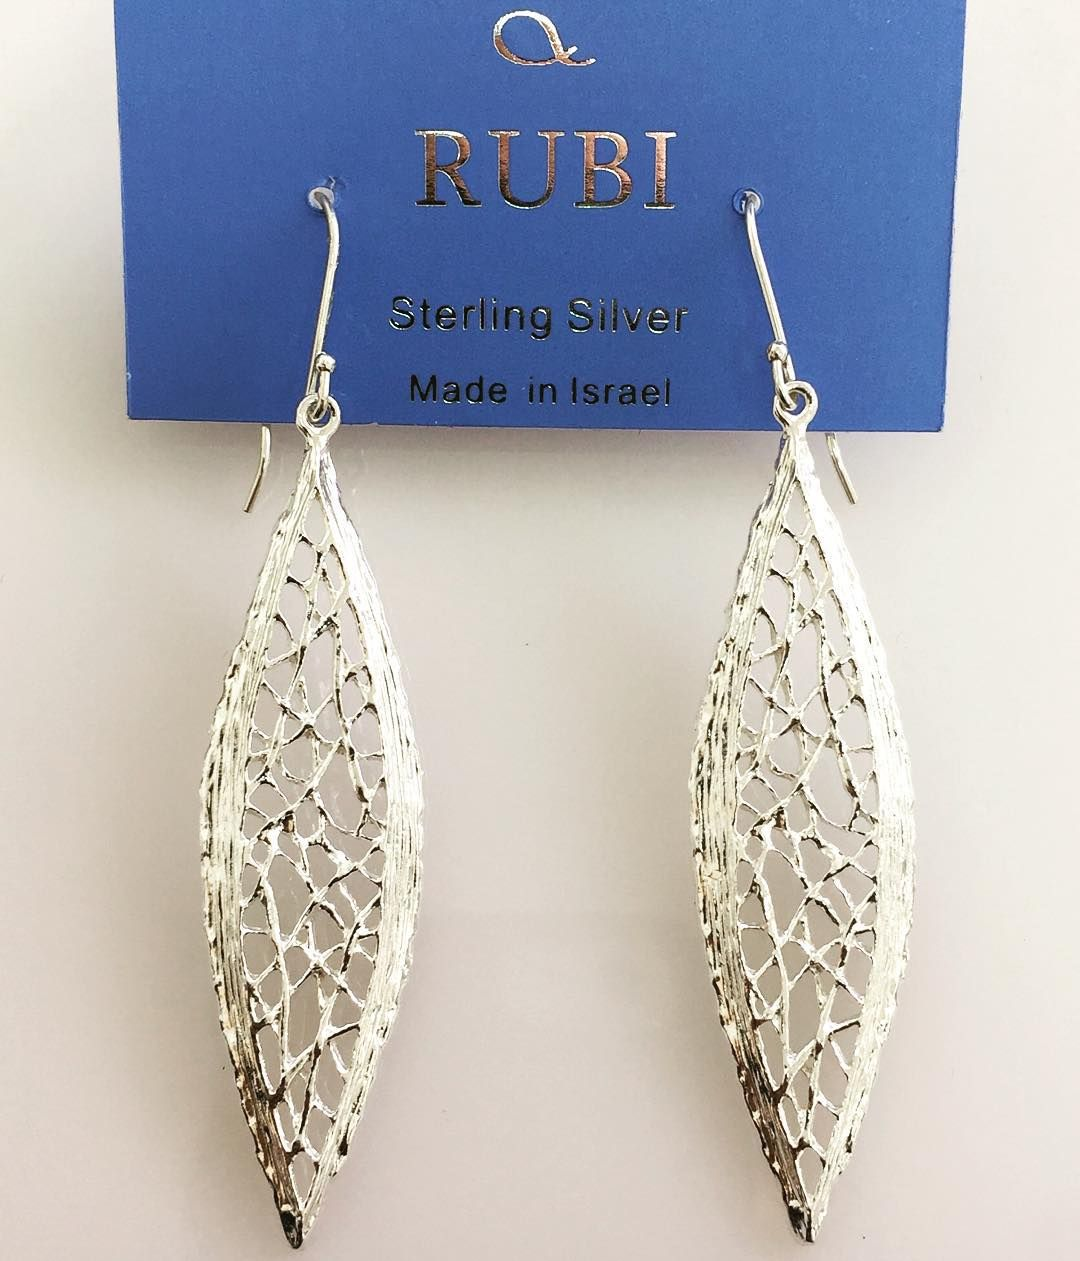 Pin by RUBI Designs on RUBI Jewelry designs made in Israel